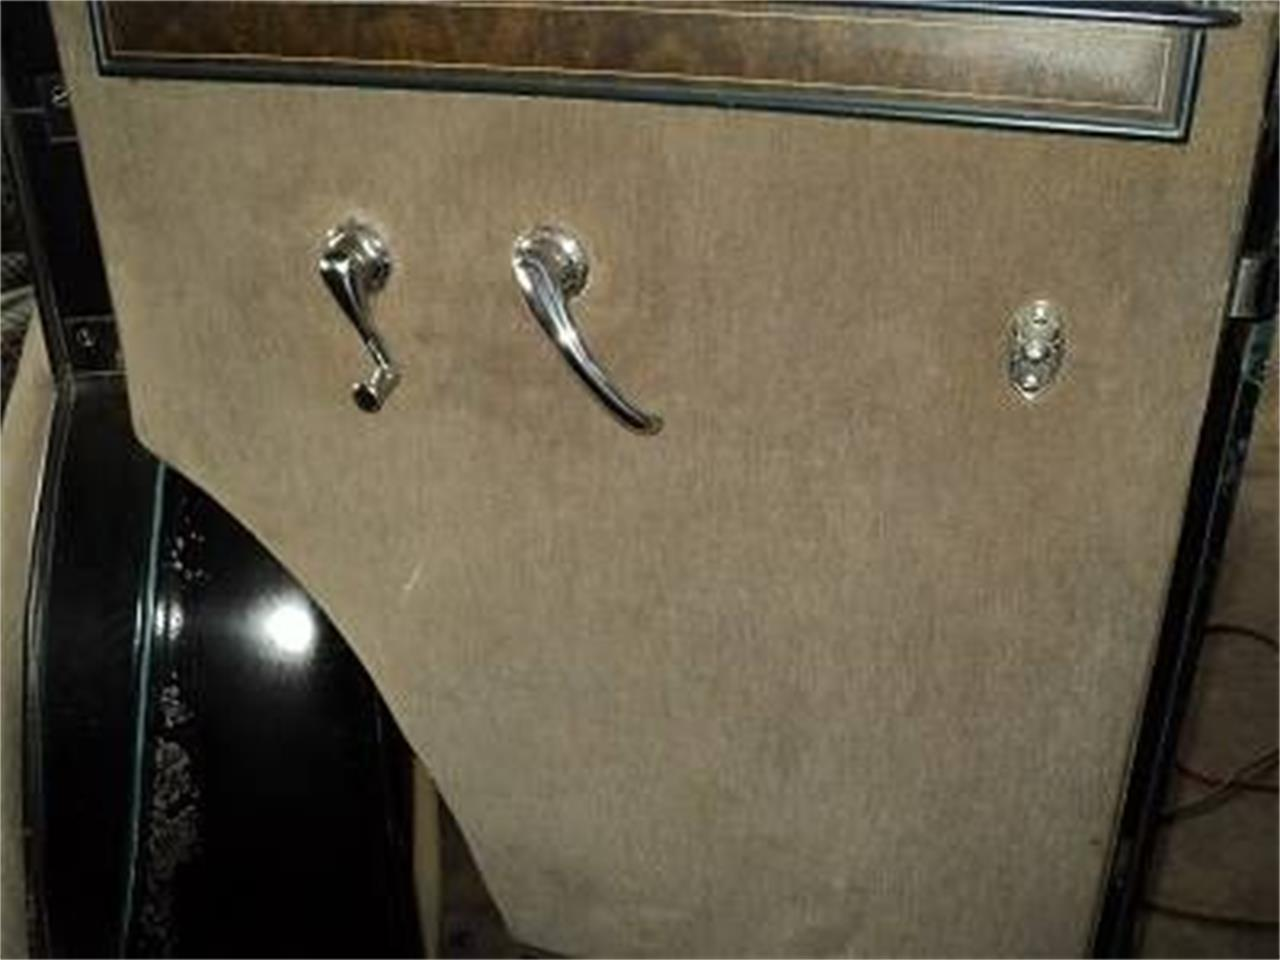 Large Picture of 1928 Buick Master located in Michigan - $26,995.00 Offered by Classic Car Deals - PKZK